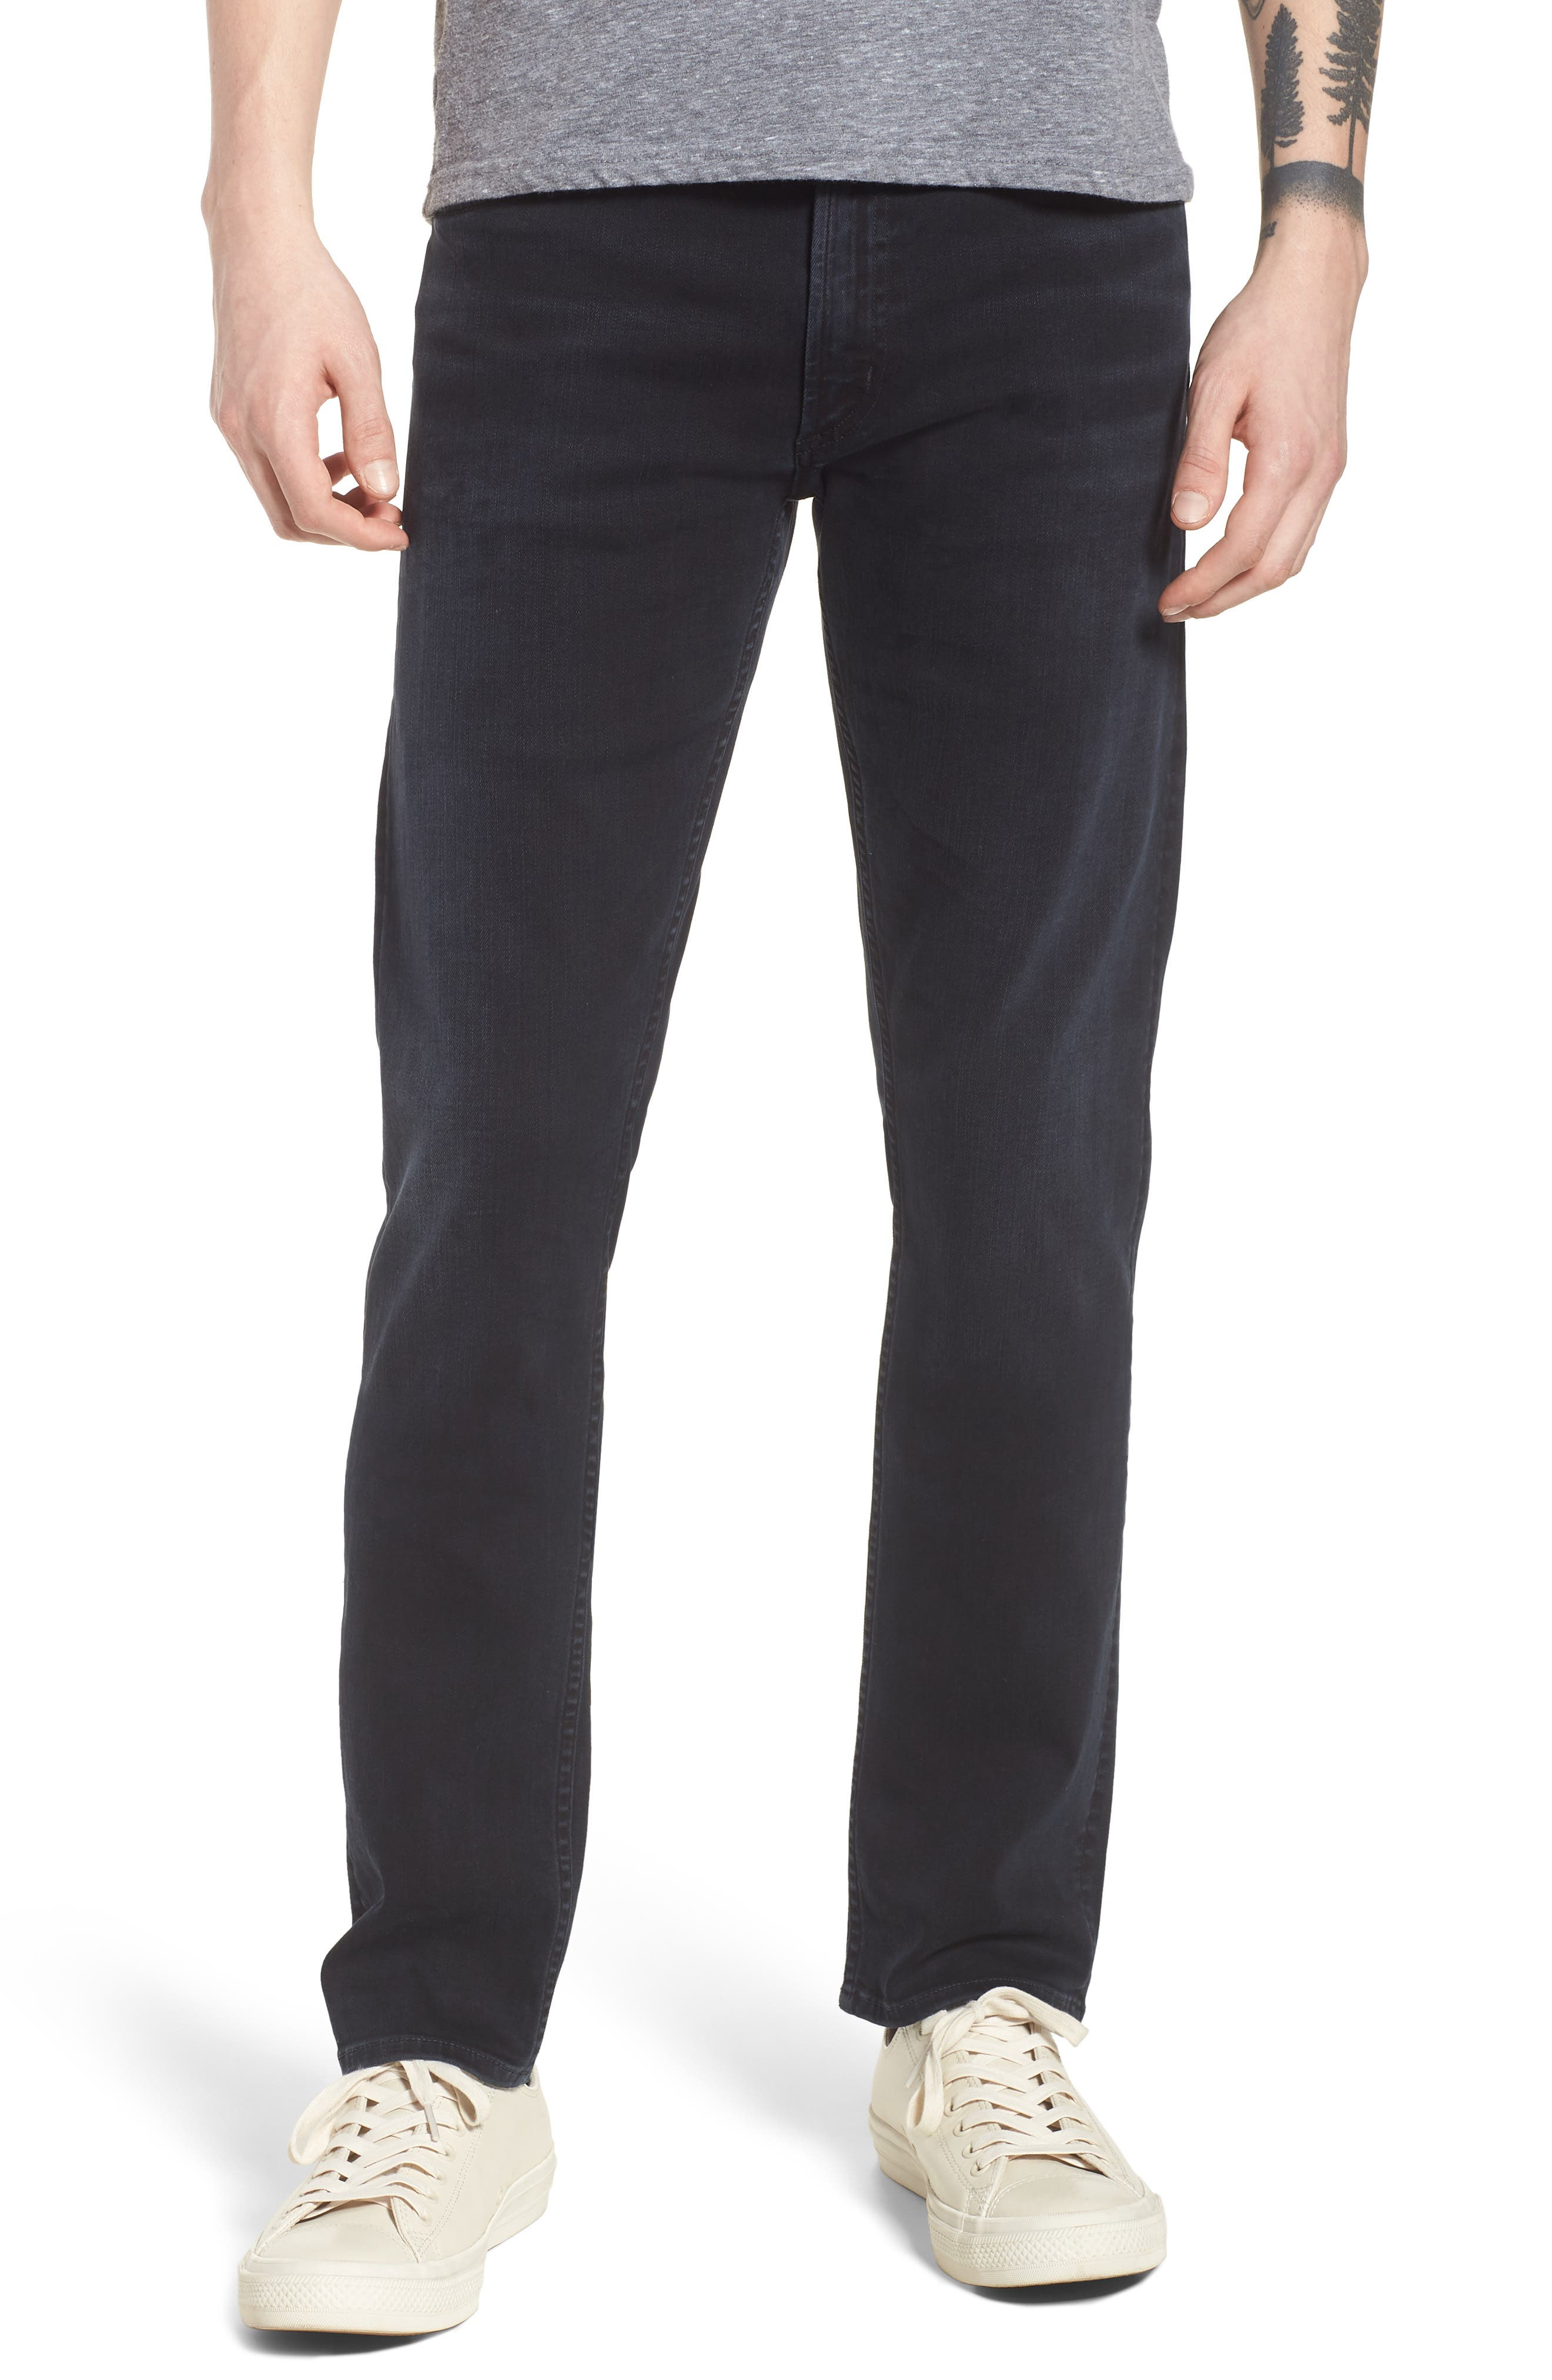 Bowery Slim Fit Jeans,                             Main thumbnail 1, color,                             Ink